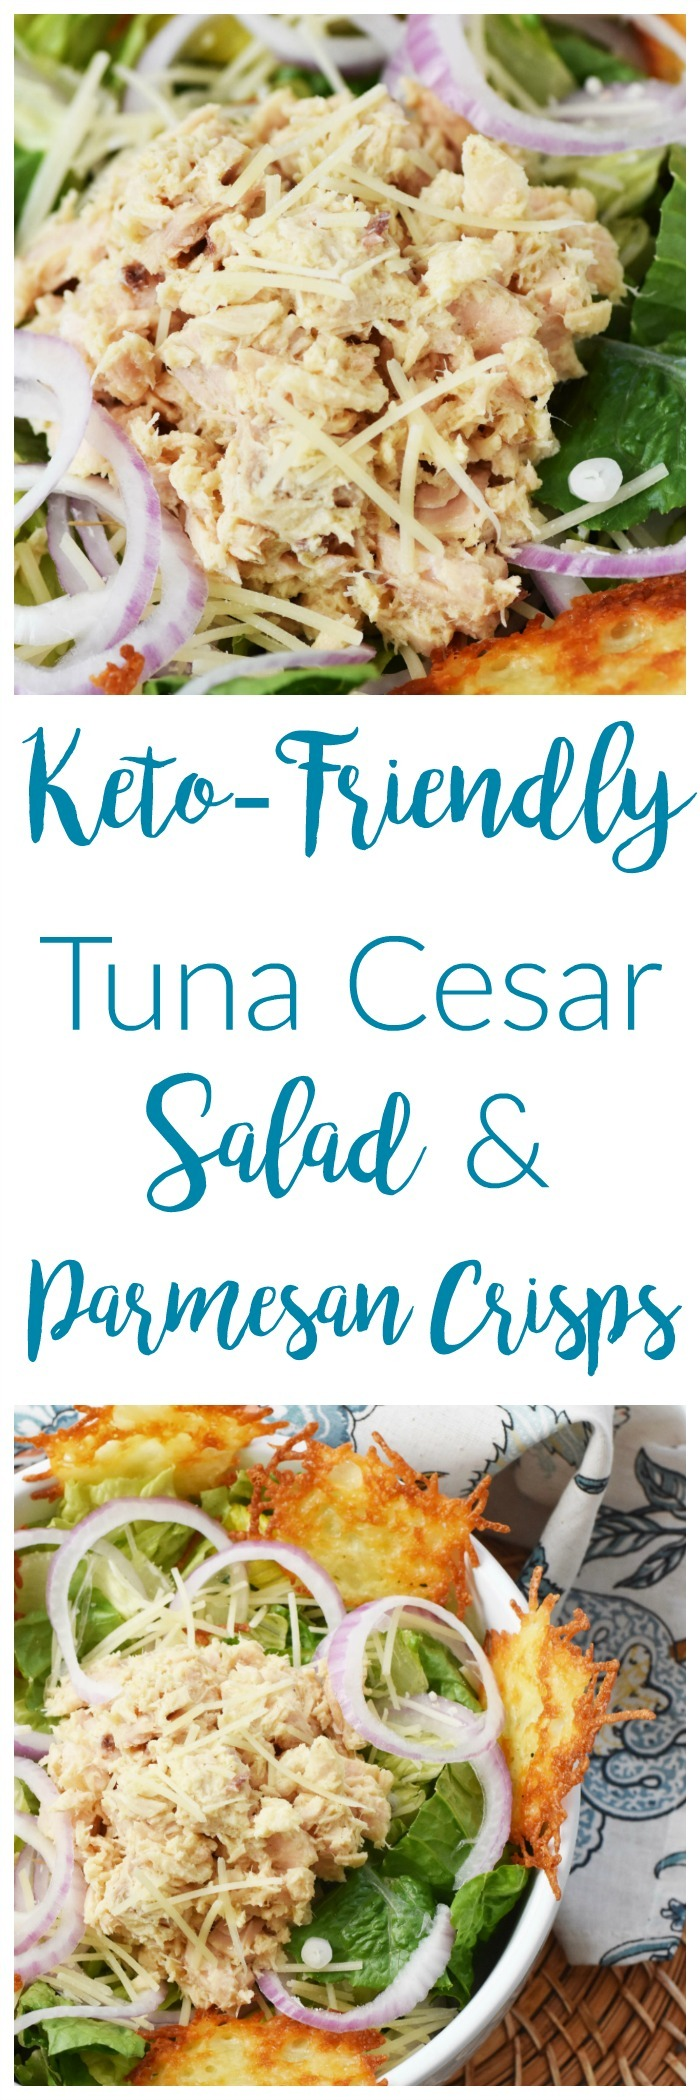 Keto-Friendly Tuna Caesar Salad with Parmesan Crisps